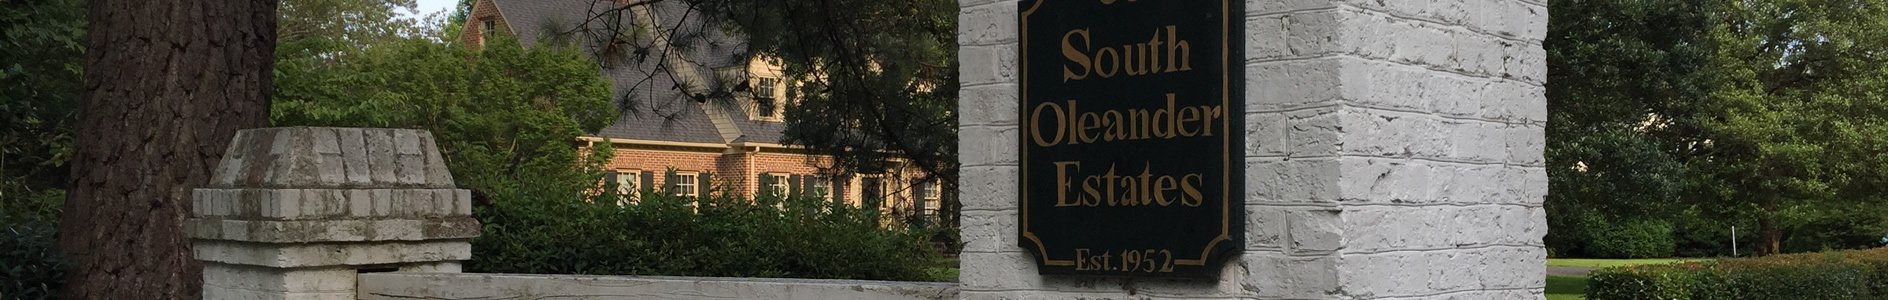 Sign at the entrance to South Oleander Estates in Wilmington, NC